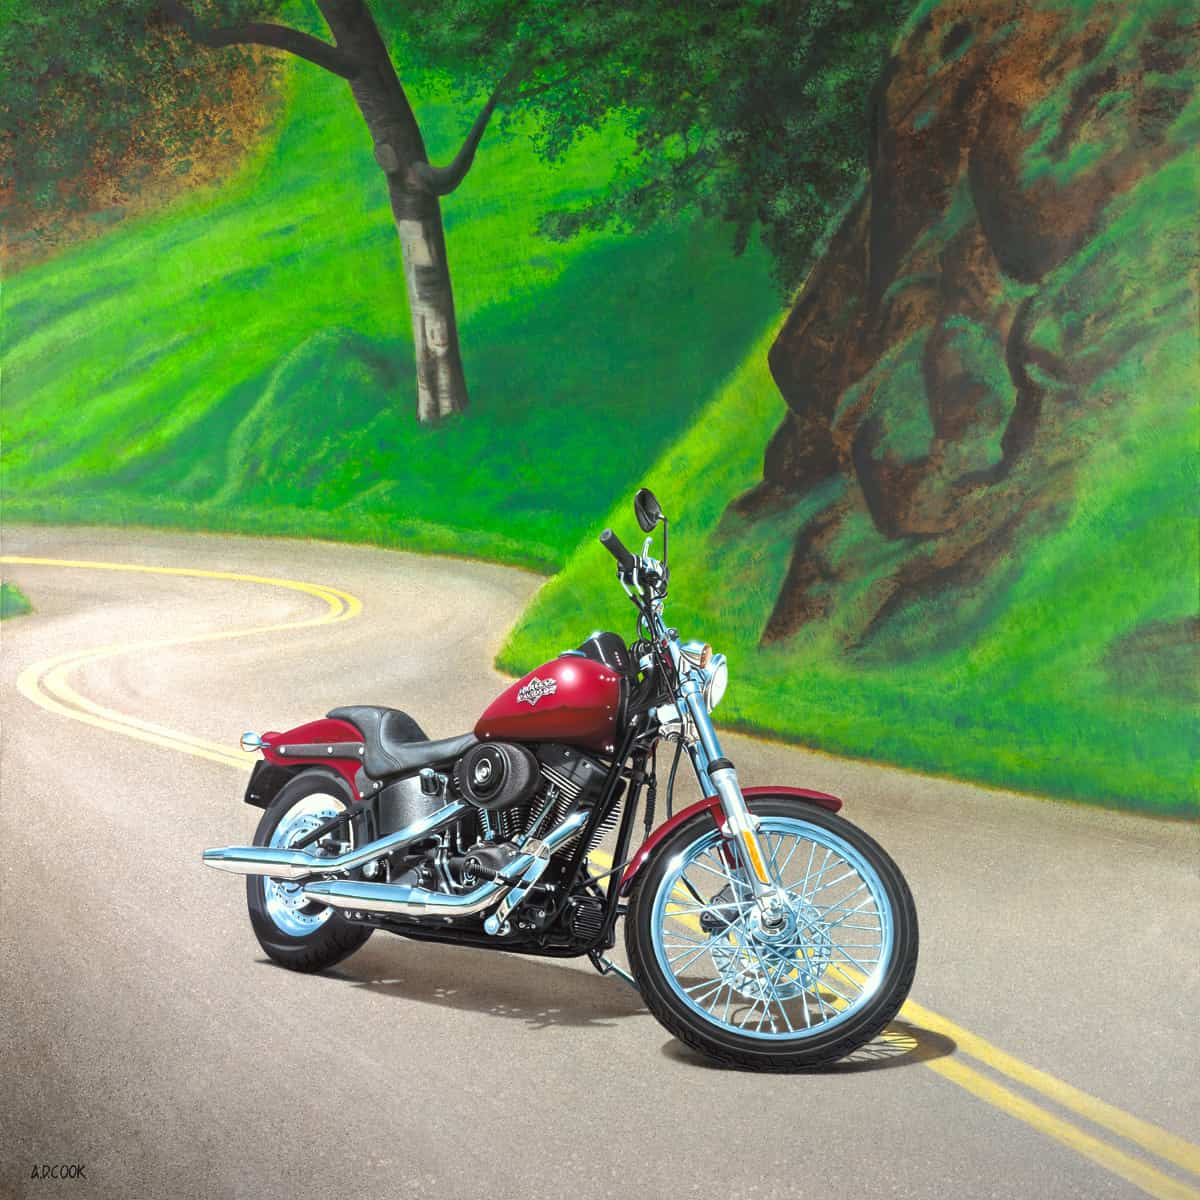 Harley-Davidson NIGHT TRAIN painting by A.D. Cook 2004